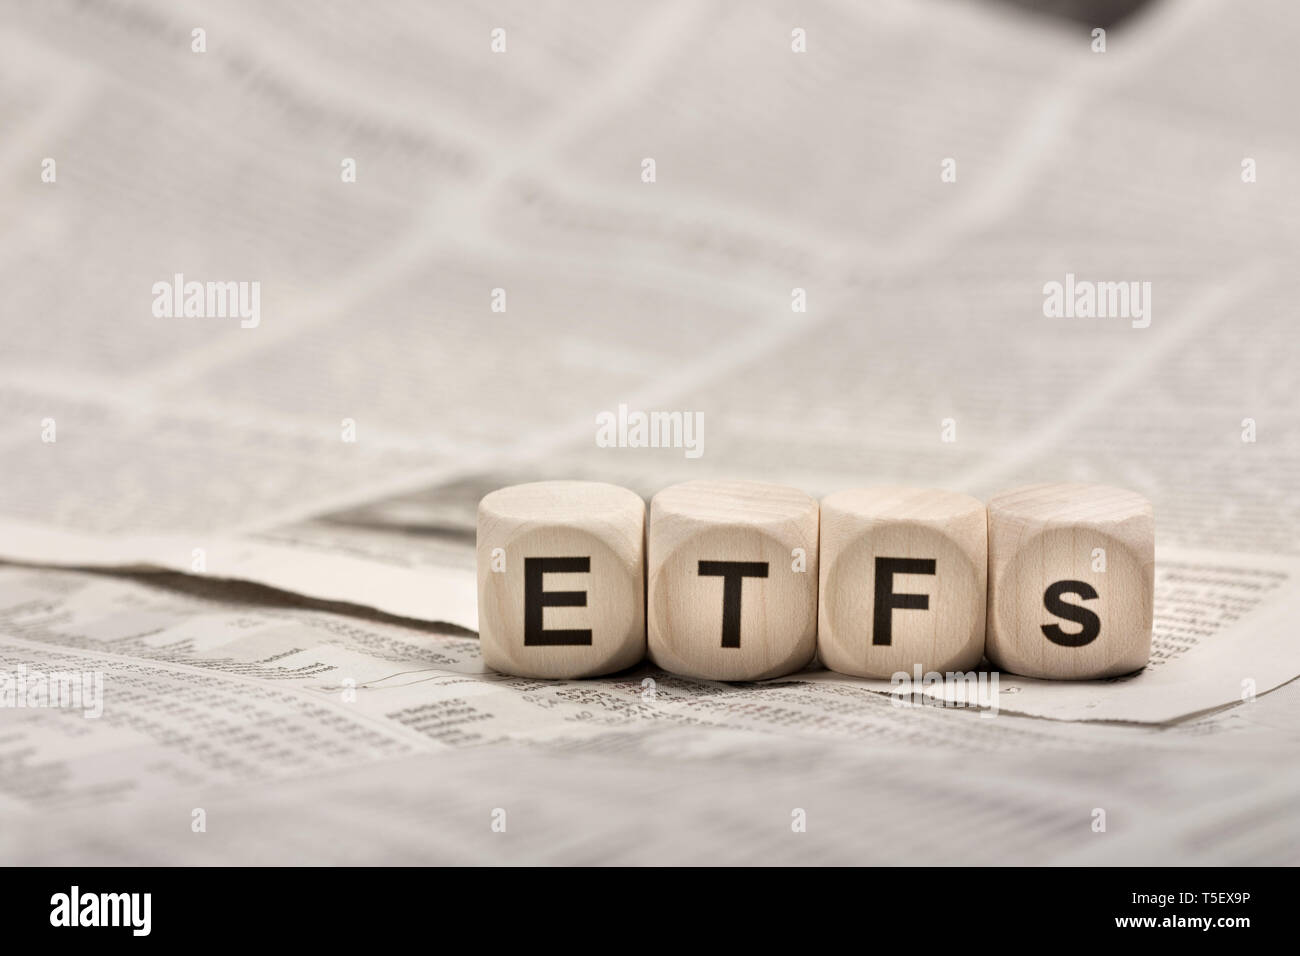 Exchange traded funds - wooden cubes on newspaper forming word ETFs Stock Photo